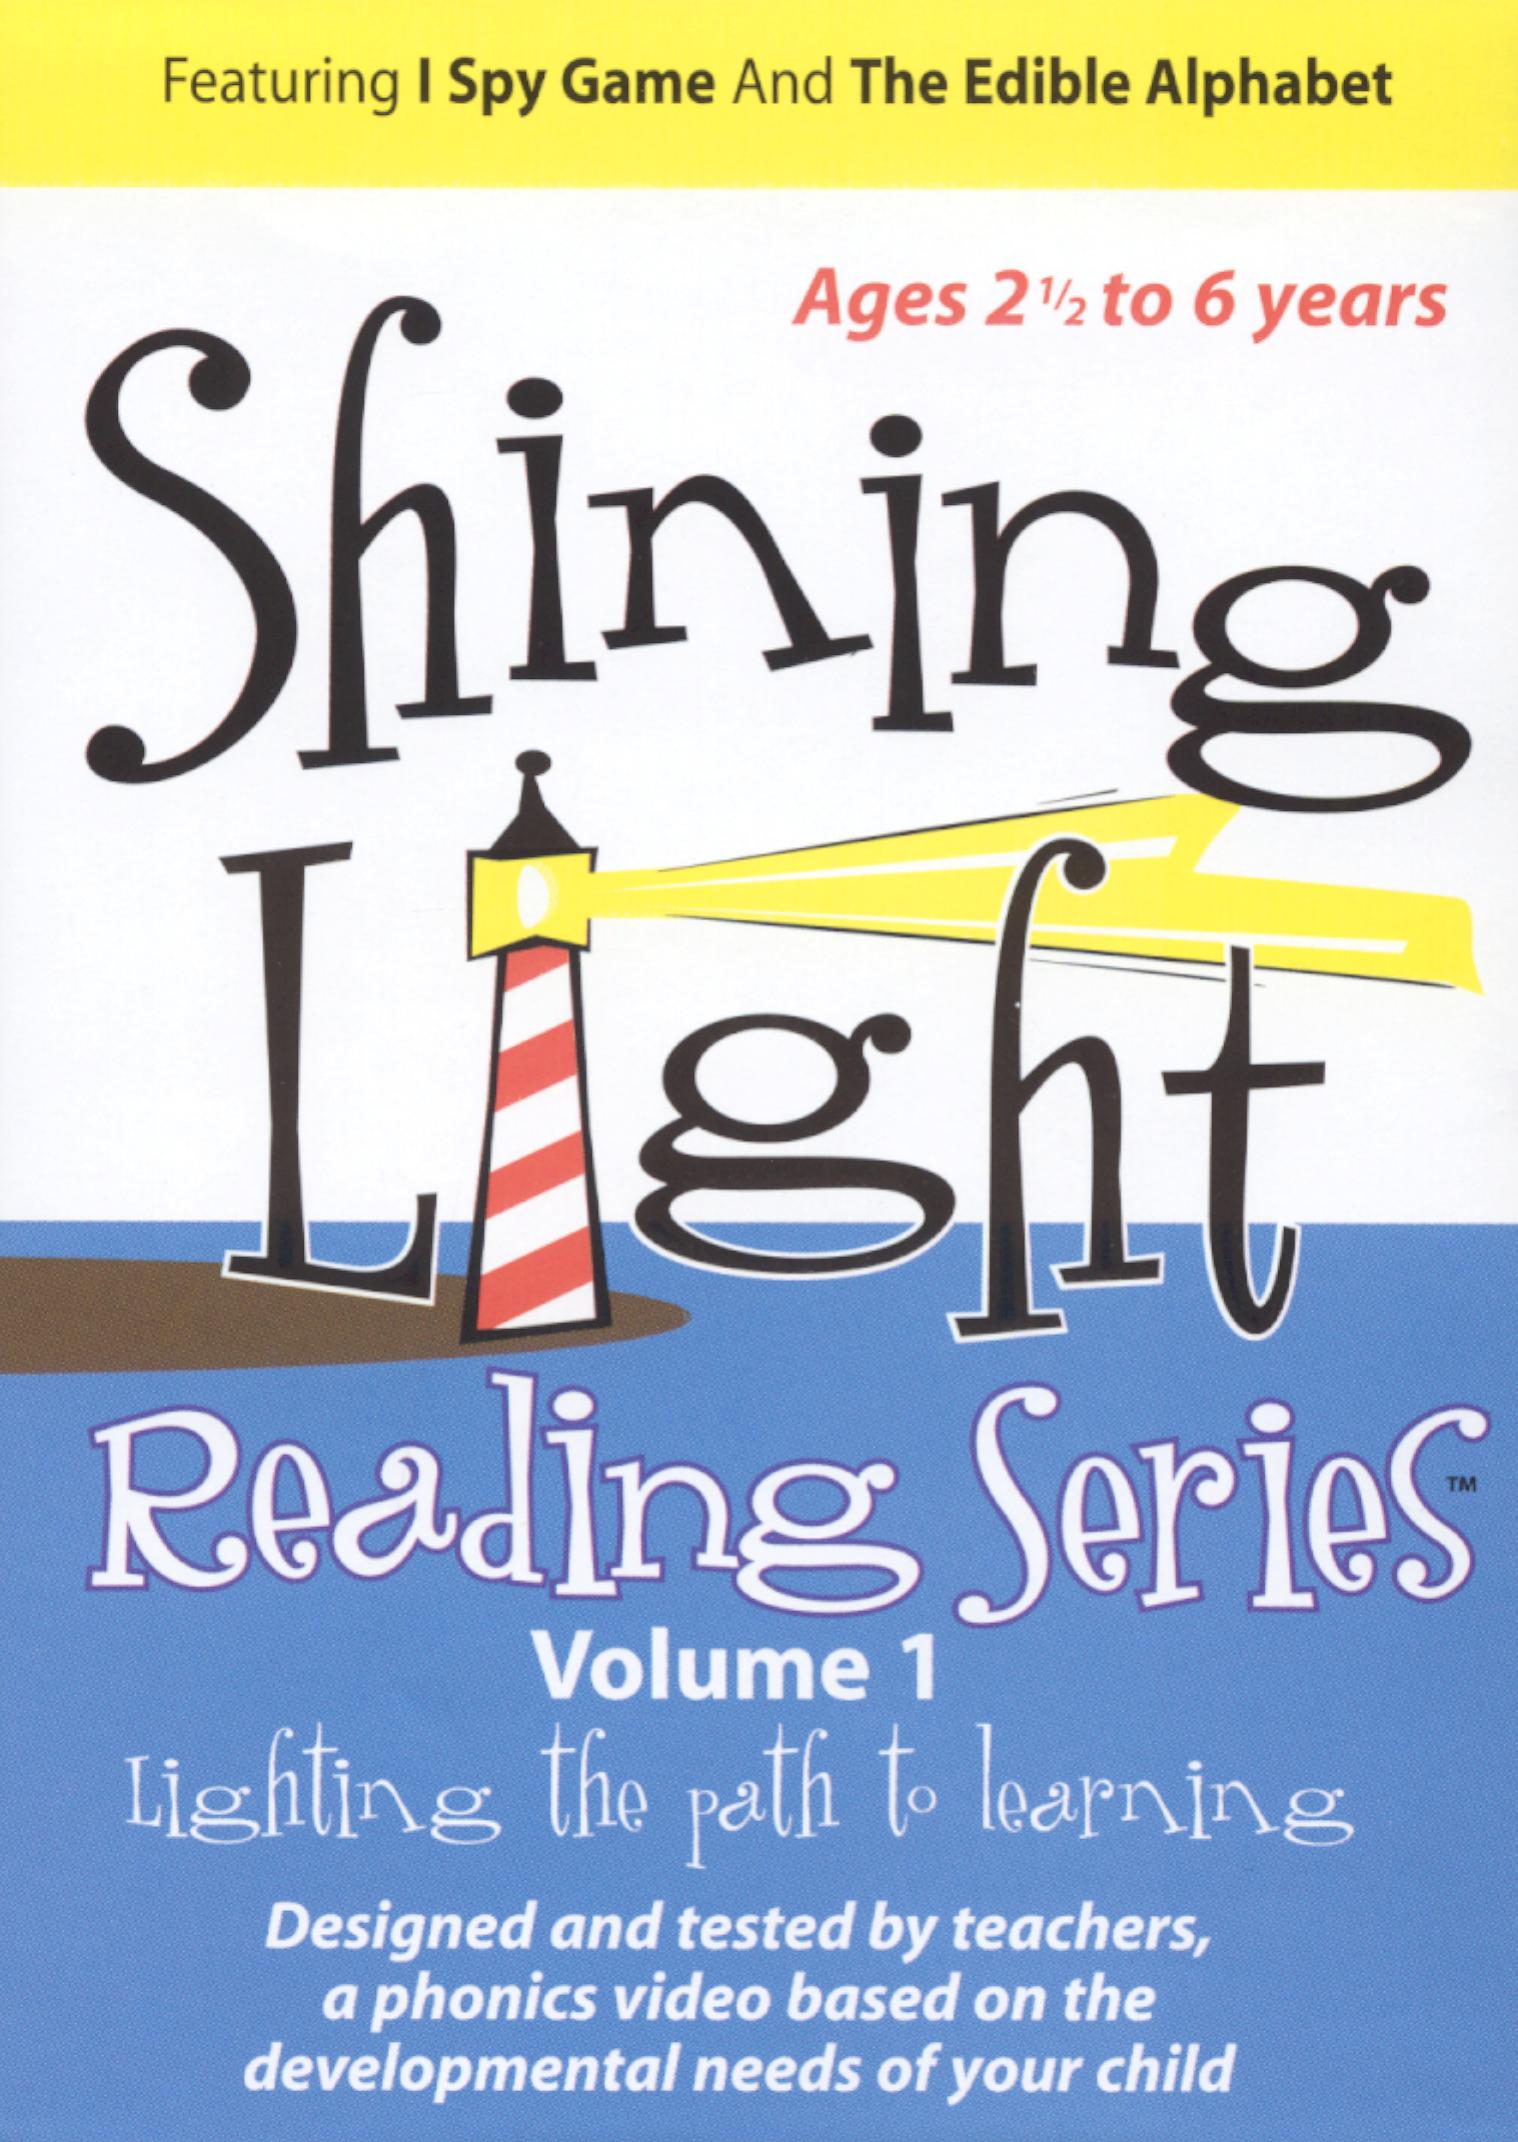 Shining Light Reading Series, Vol. 1: Lighting the Path to Learning